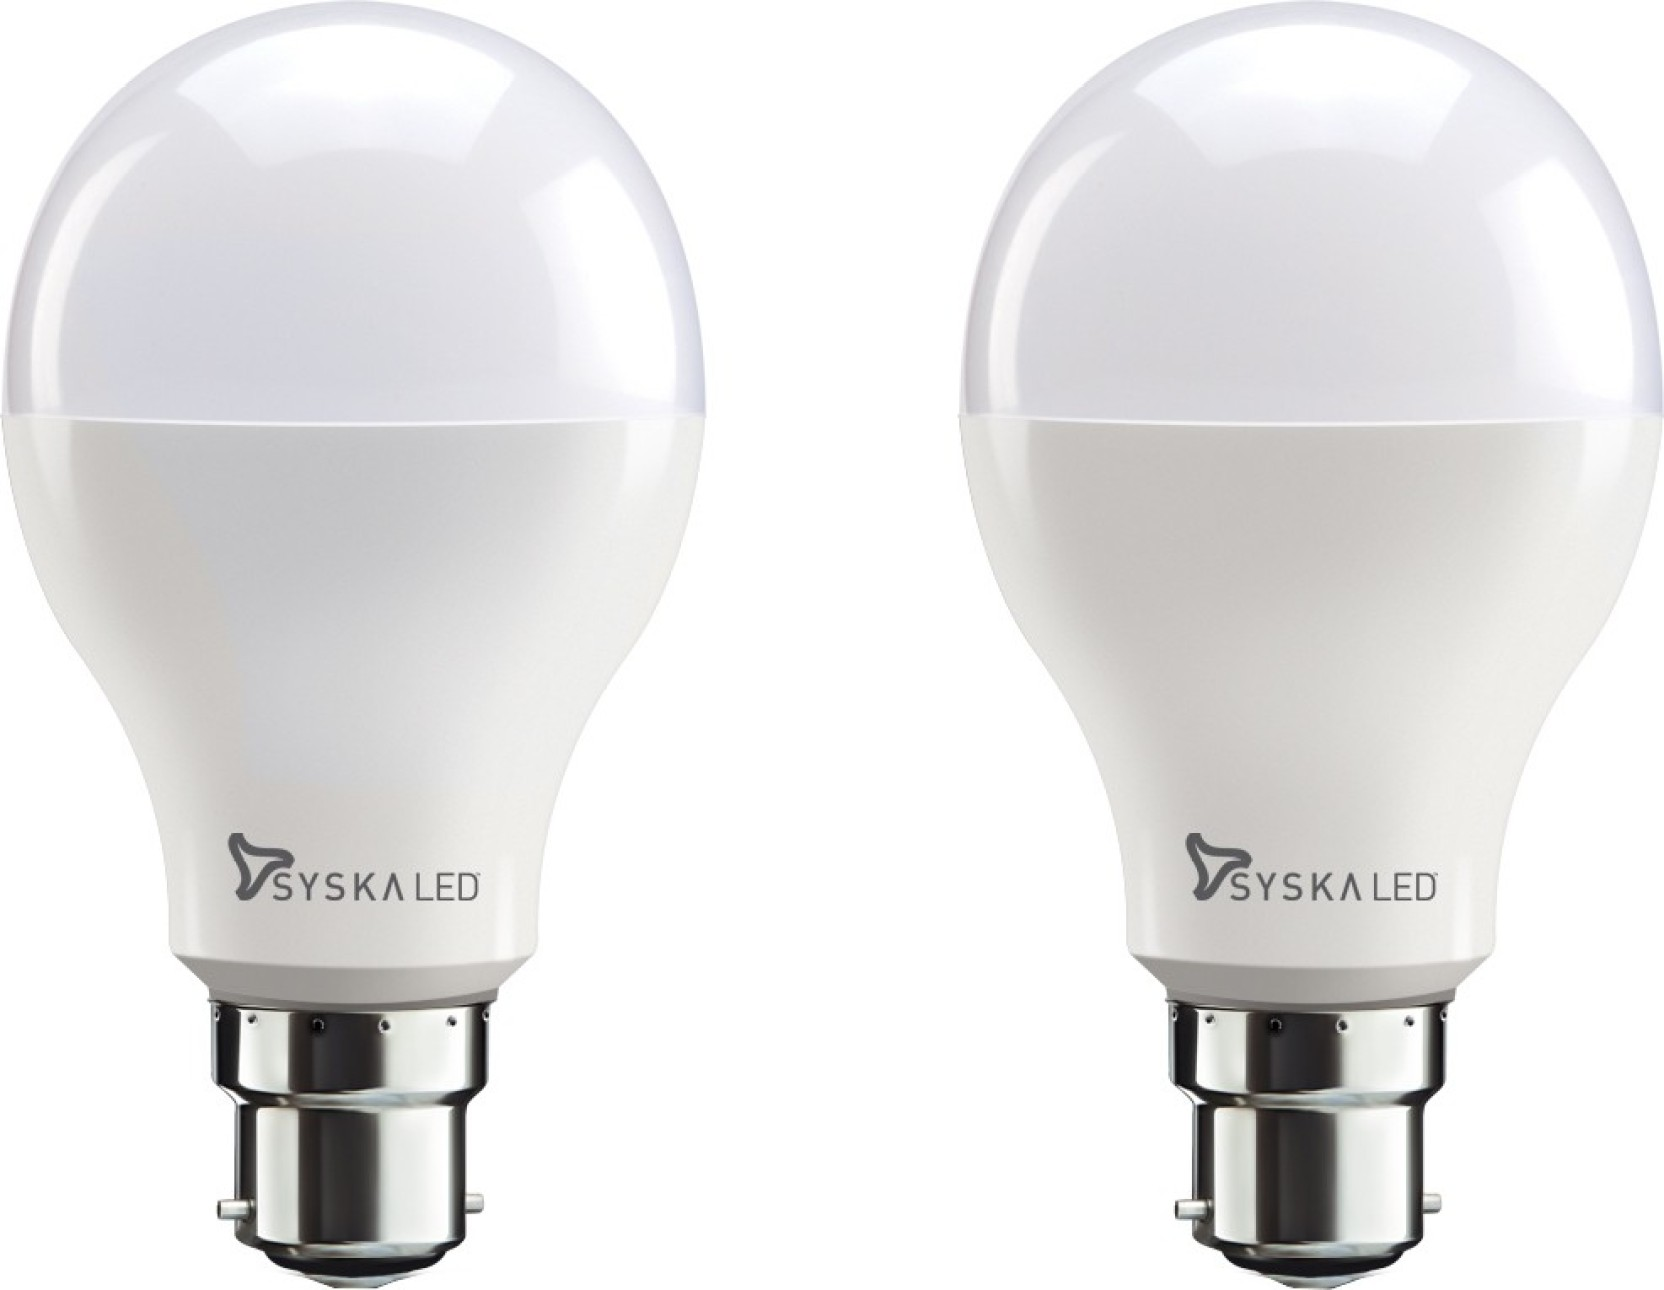 Syska Led Lights 18 W B22 Led Bulb Price In India Buy Syska Led Lights 18 W B22 Led Bulb